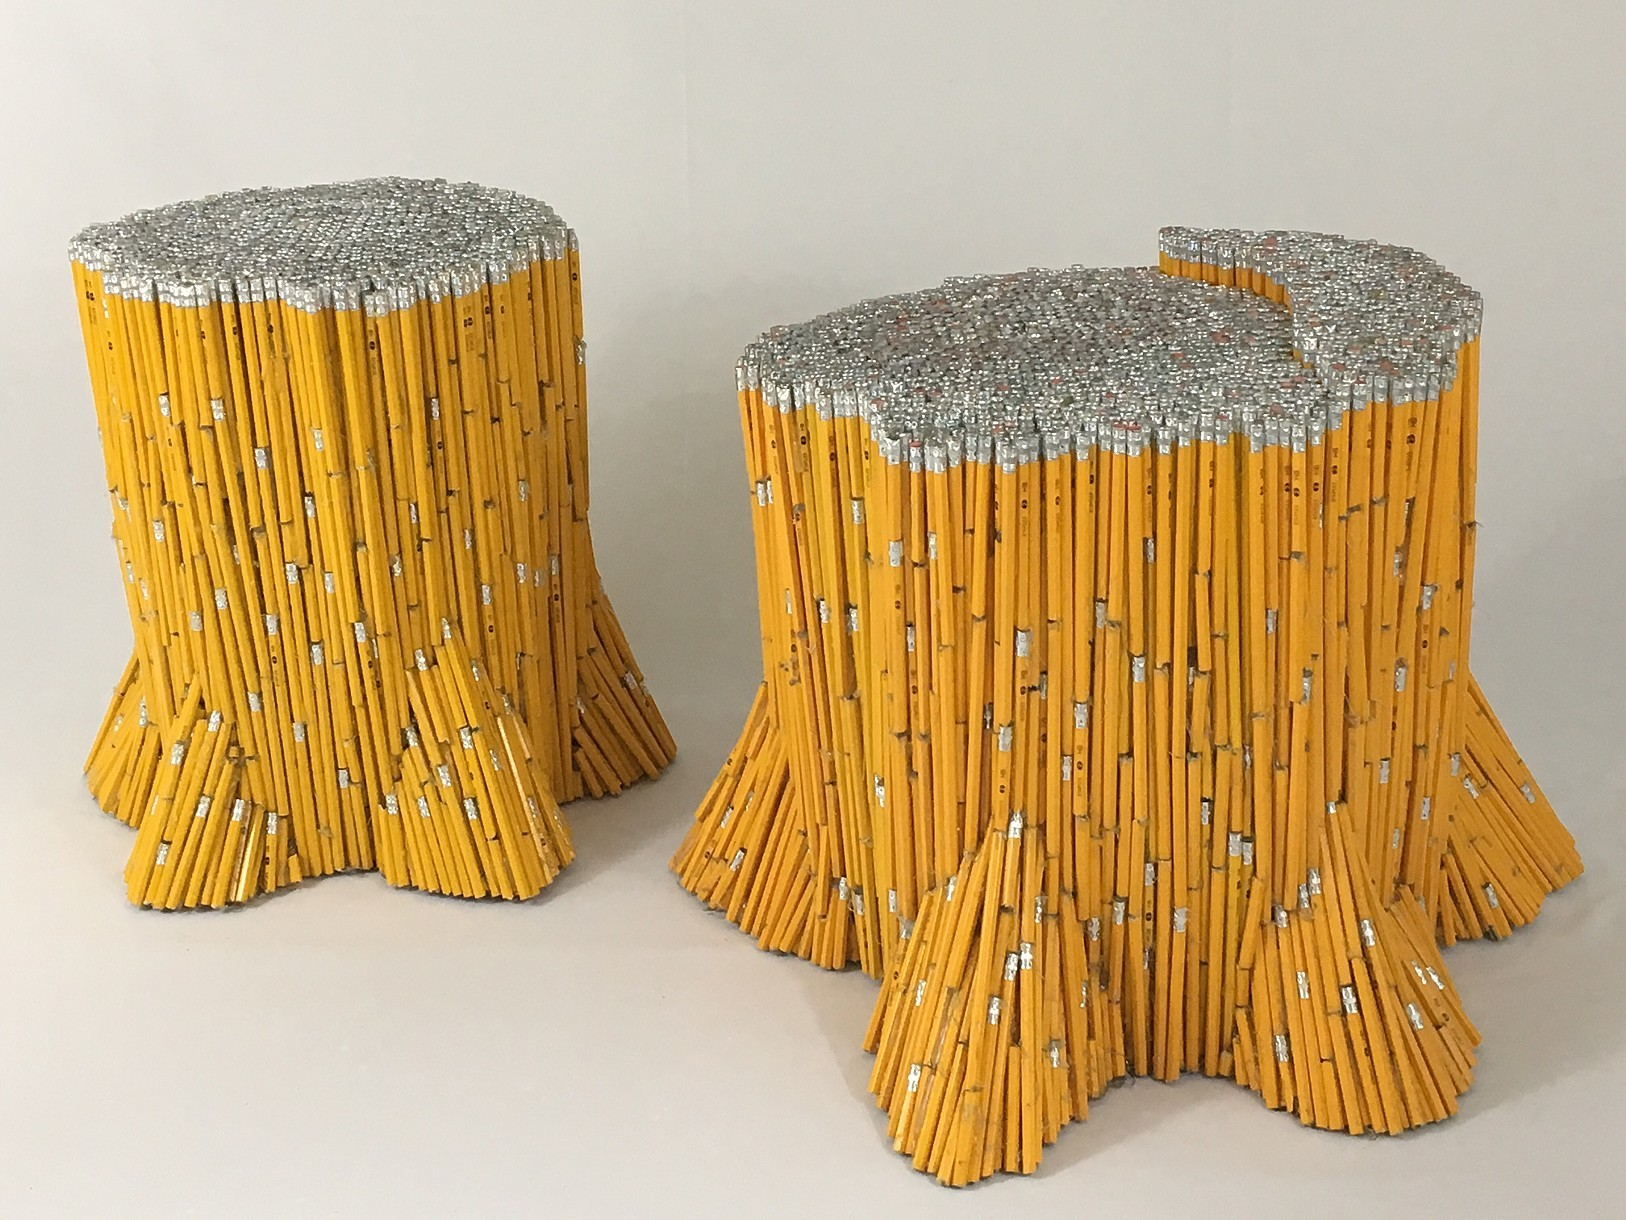 """Stumps"" , 2017  Pencils, glue.  Large stump:  19""x22""x24"".  Small stump:  19""x16""x14""  Courtesy Travis Childers and Carrie Able Gallery"